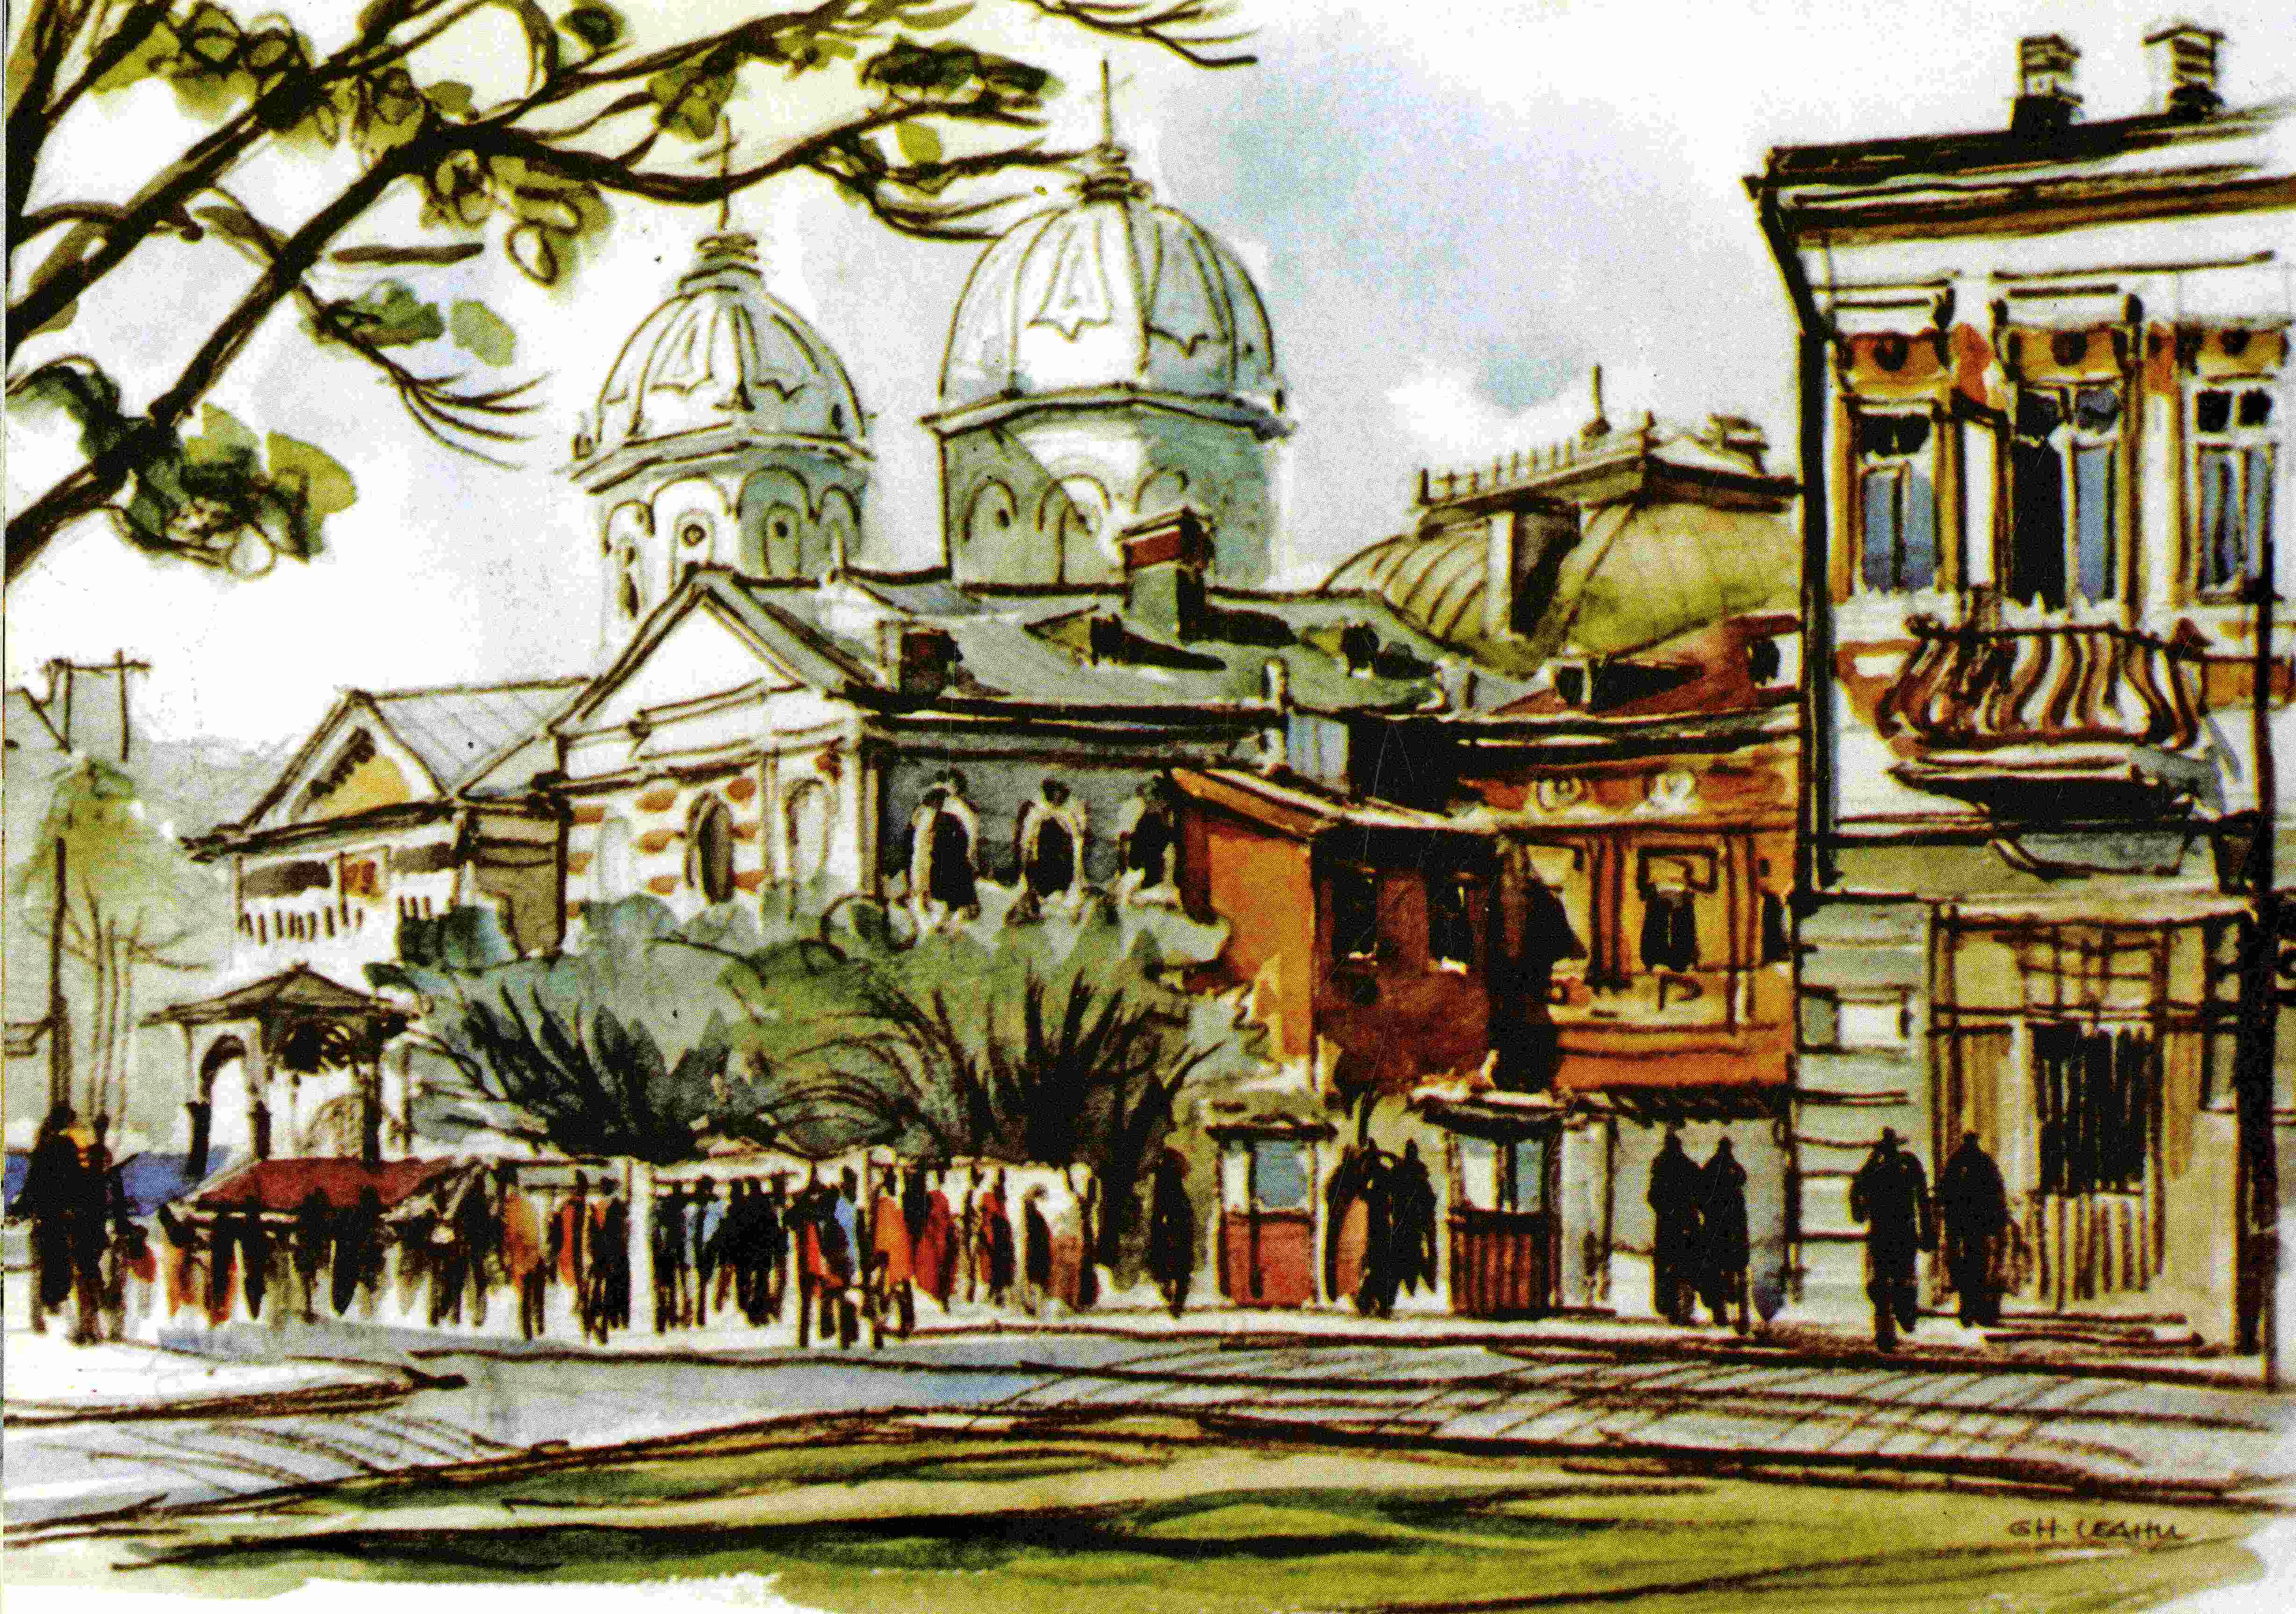 Reproduction after an watercolour painted by Gheorghe Leahu which represents Sfânta Vineri (Saint Friday) Church demolished in 1986